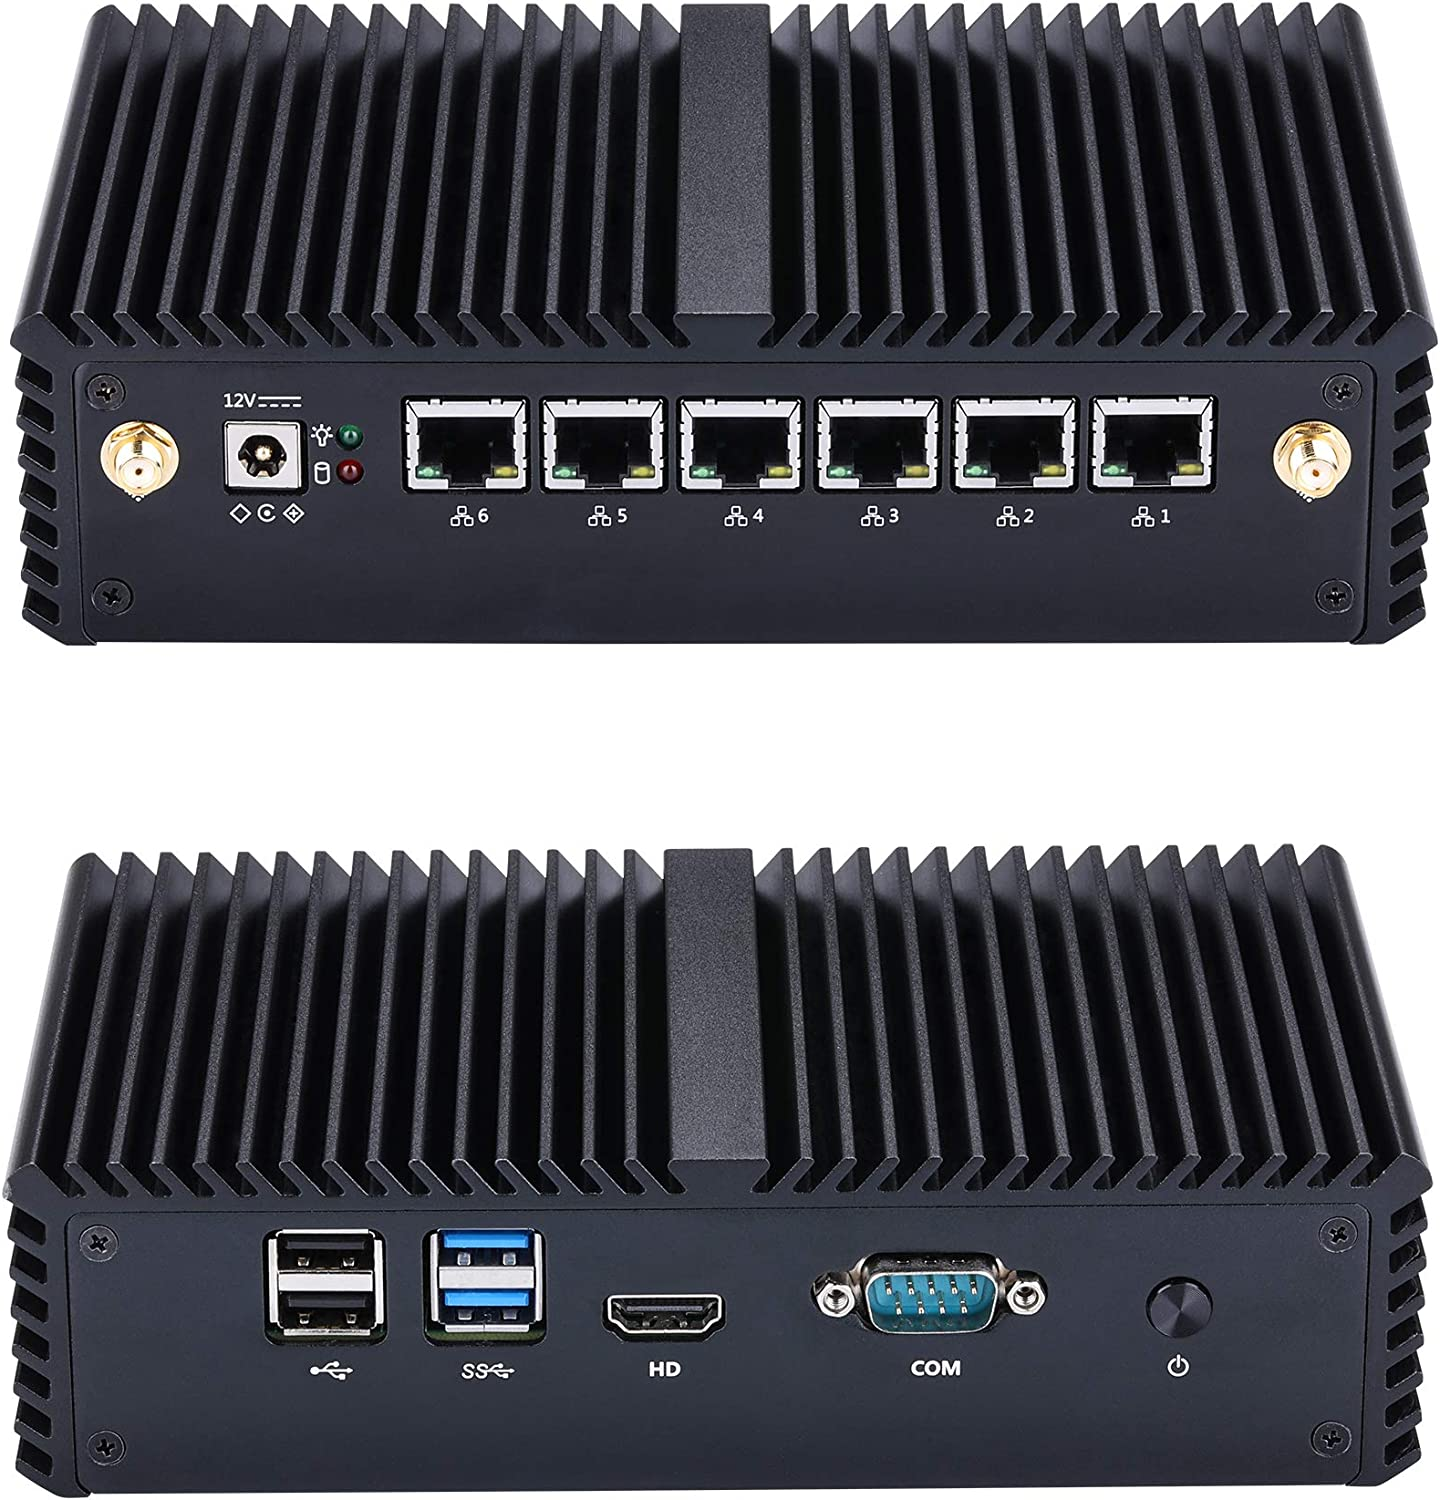 Kettop Mini Desktop Router i5 Mi7200L6 Intel Core i5-7200U,2.5GHz (up to 3.10 GHz) (16GB DDR4 RAM 512GB SSD) AES-NI,6 Gigabit LAN,Used as a Router/Firewall/Proxy/WiFi Access Point